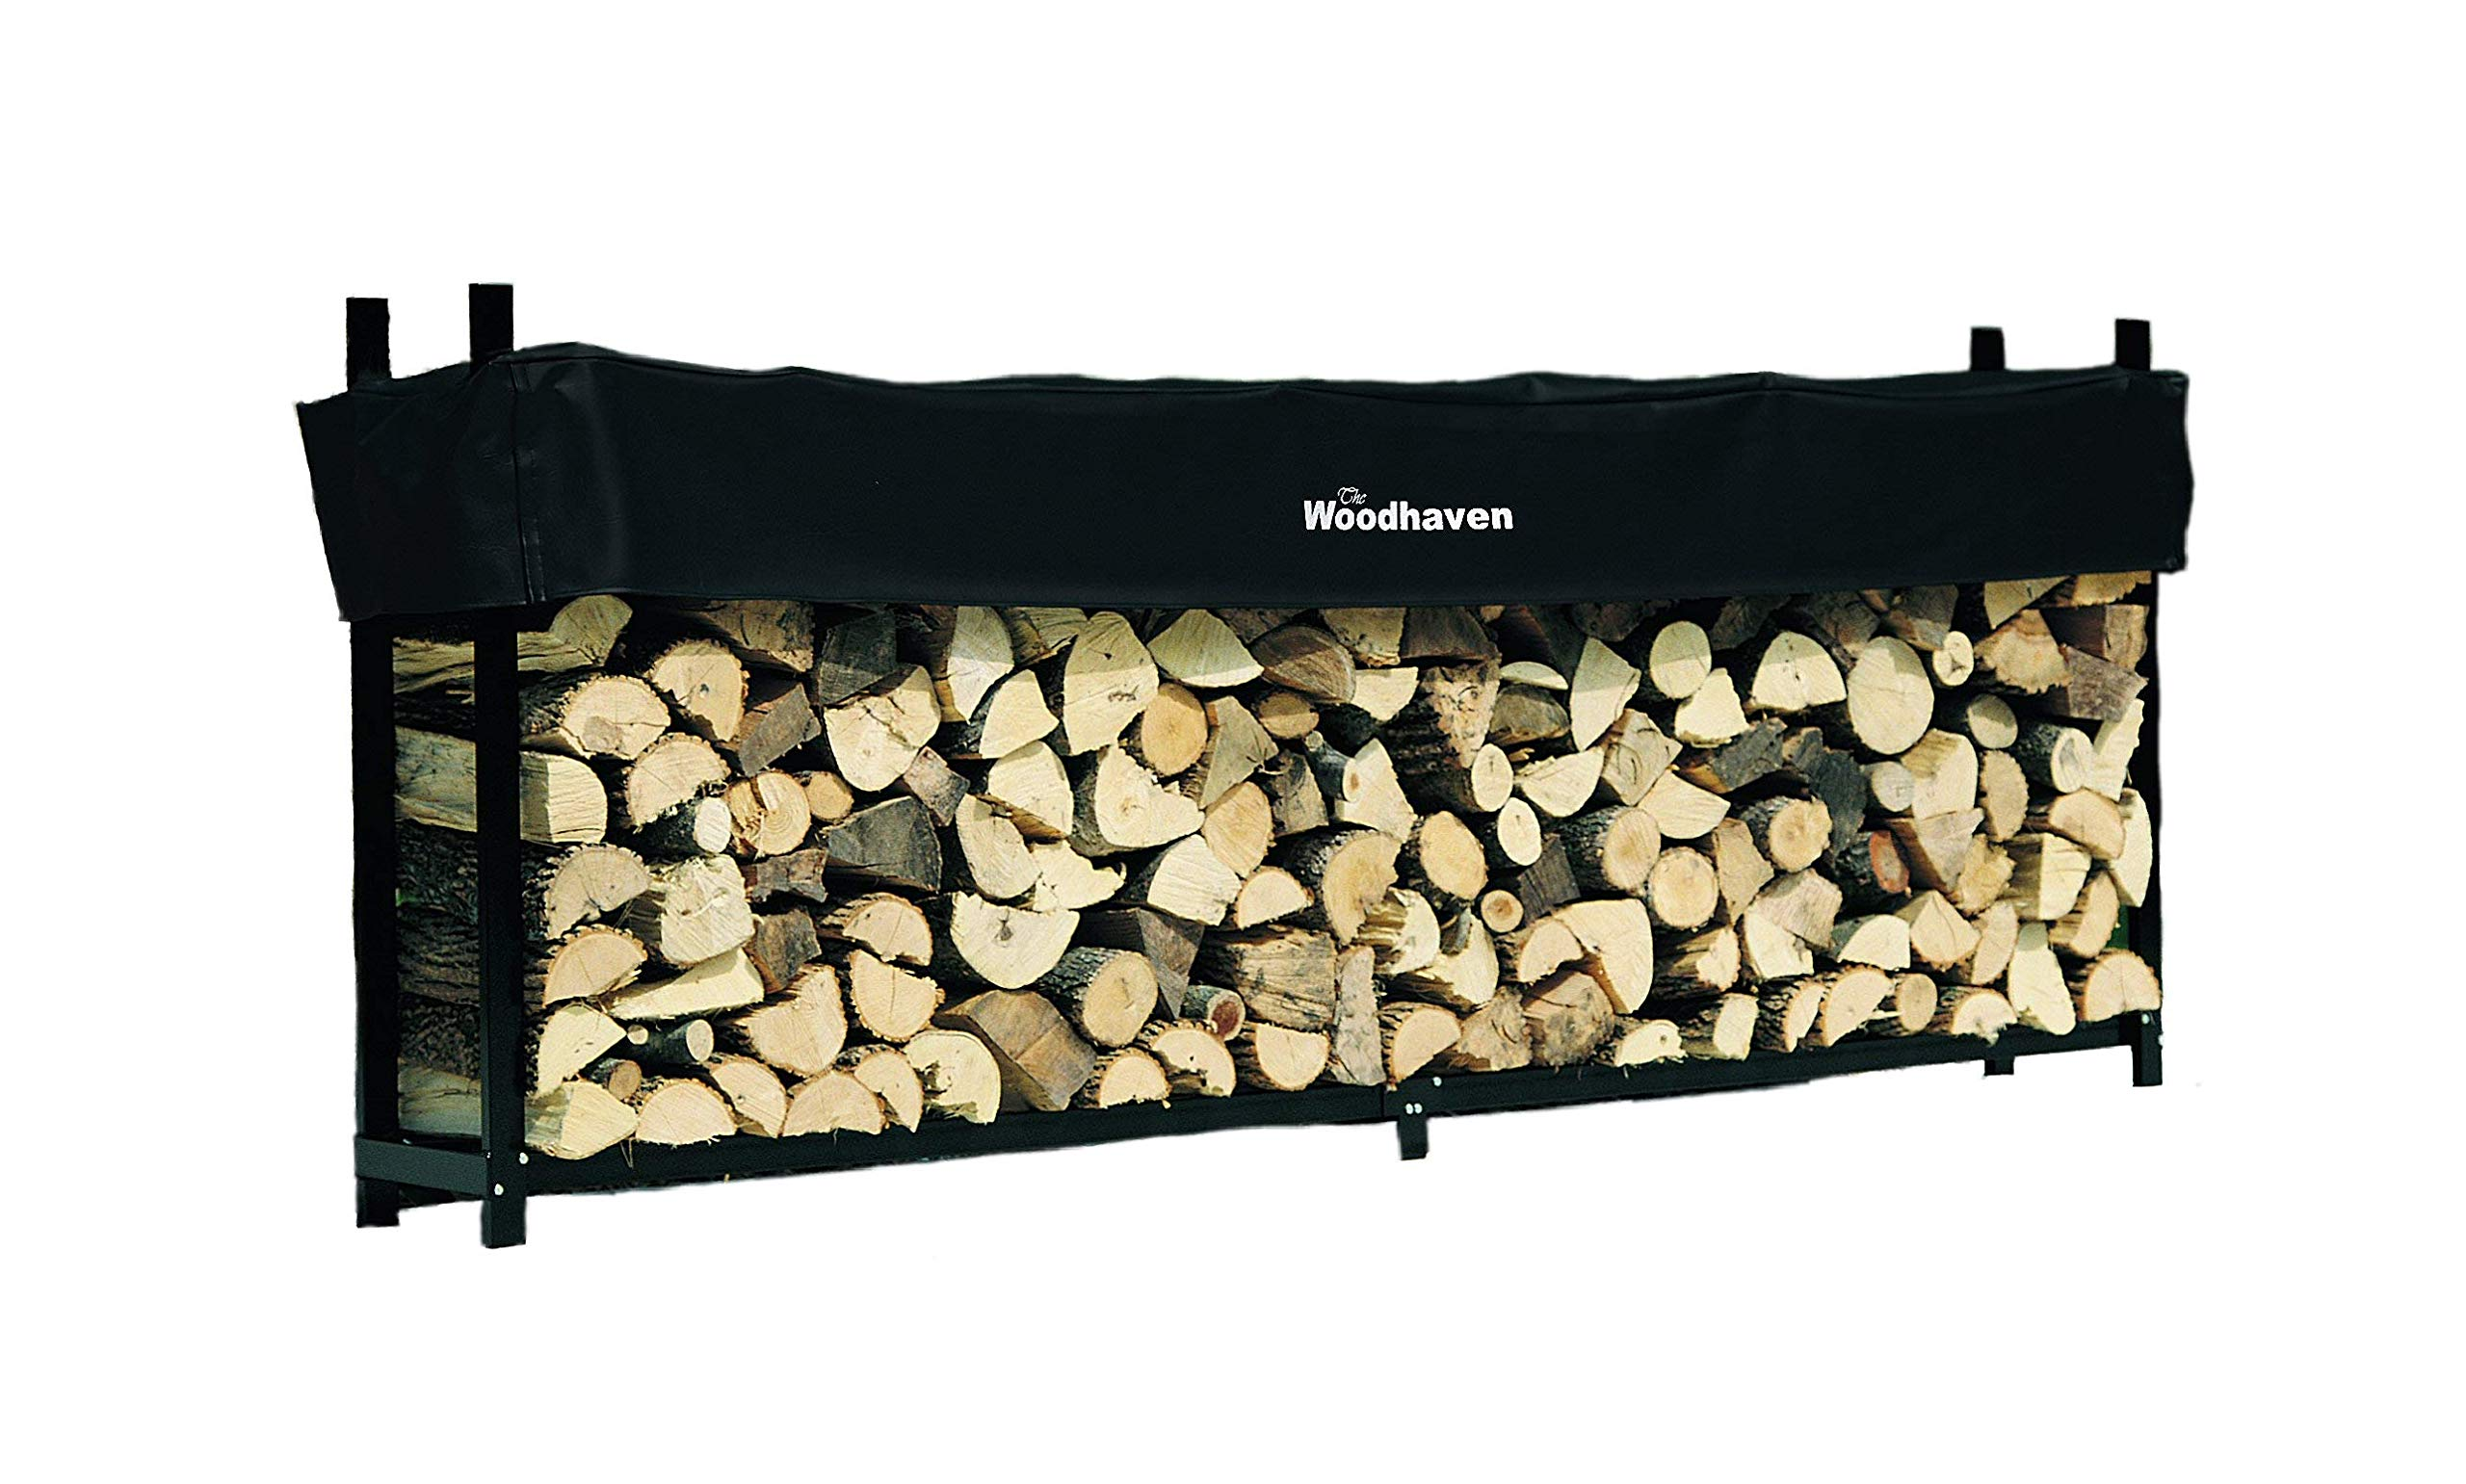 Woodhaven 10 Foot Firewood Log Rack with Cover by Woodhaven